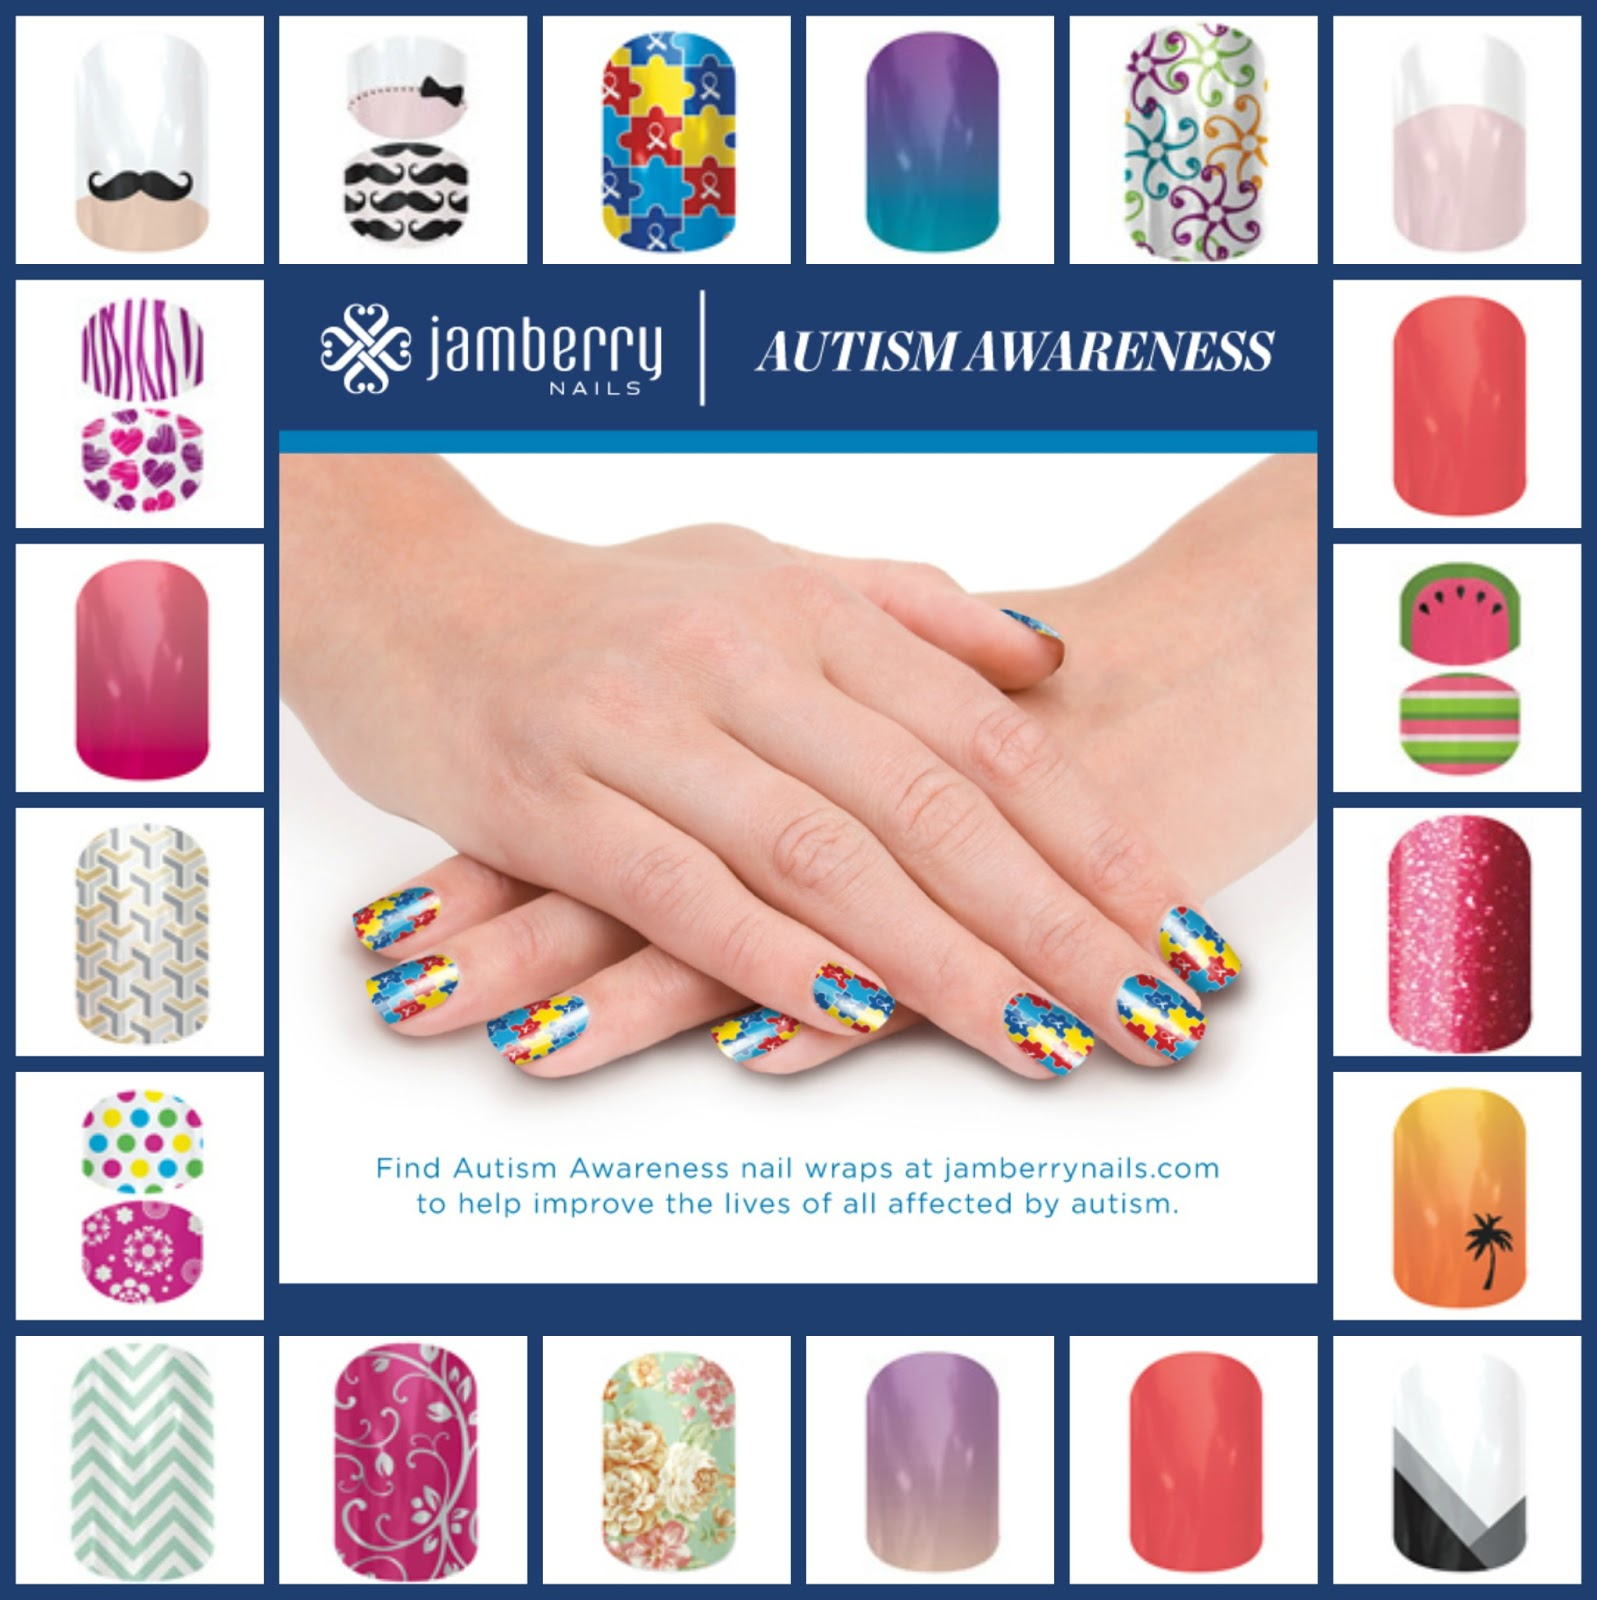 RePLAY]: Top 20 #NailArt trends for April 2013